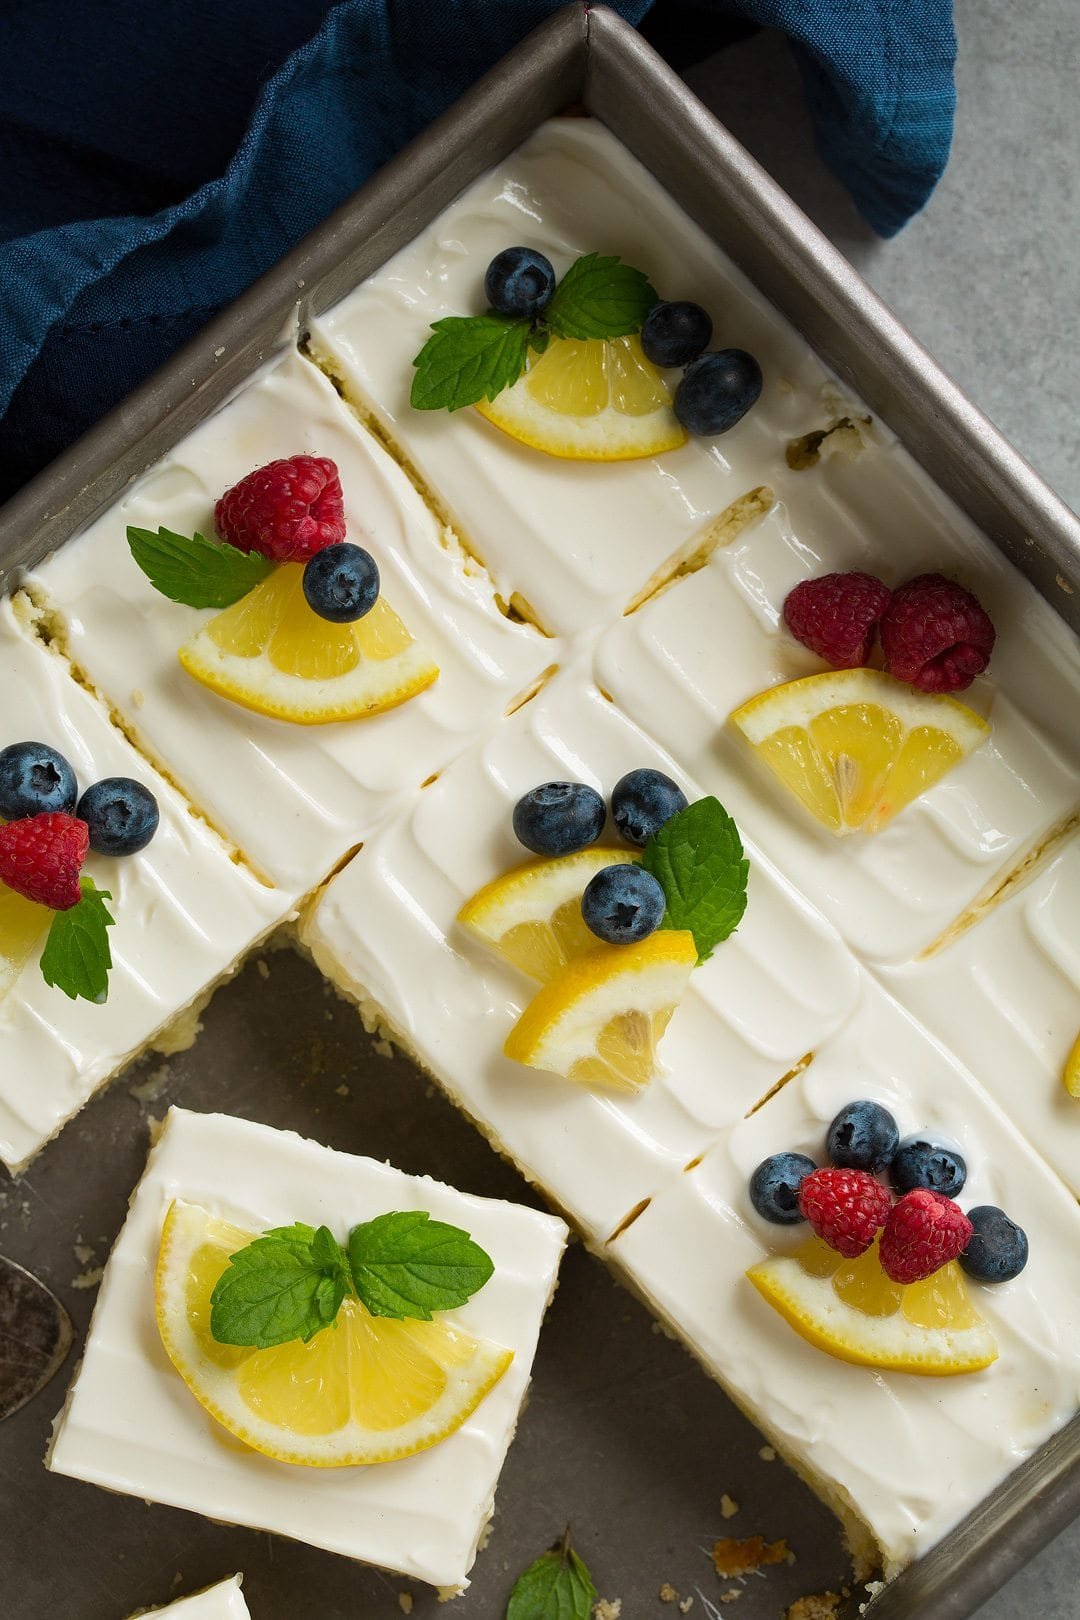 pan of Lemon Cheesecake Bars, sliced and garnished with berries and lemon wedges